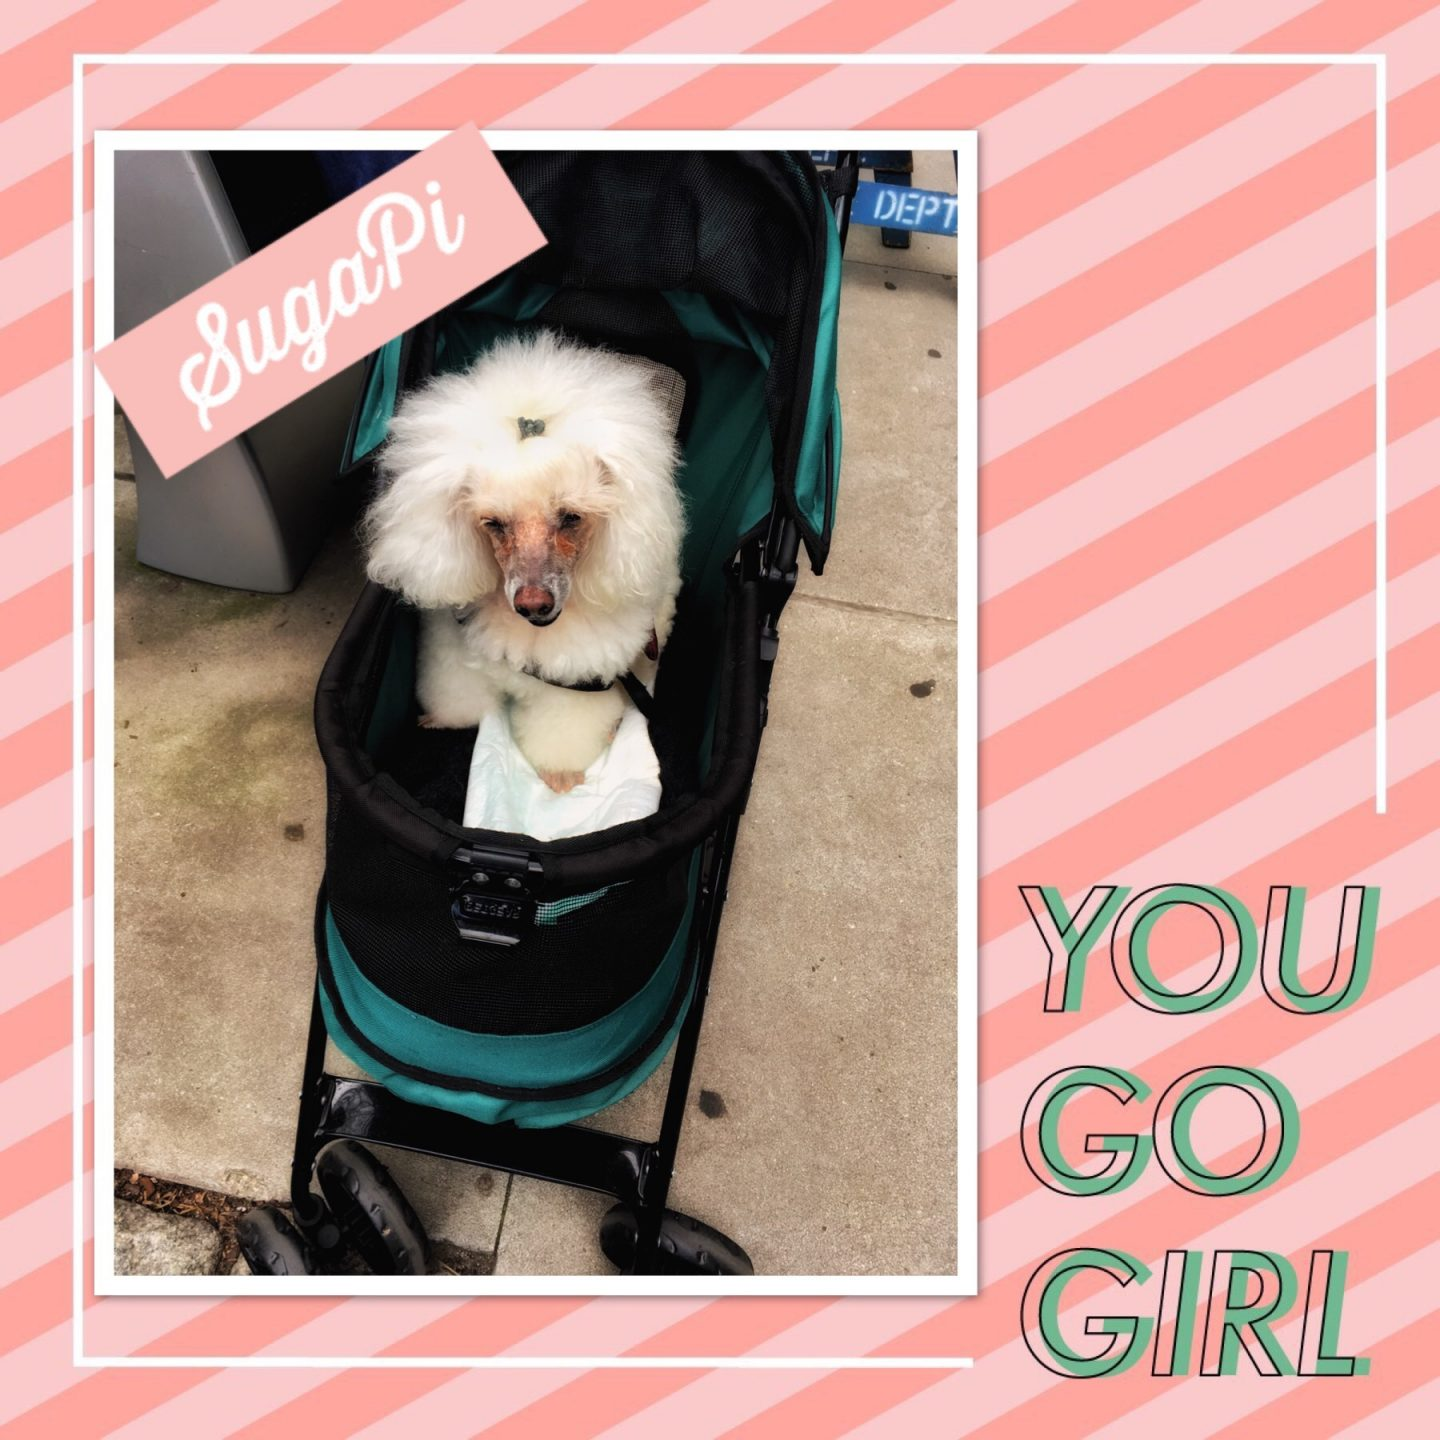 Cute dog in a stroller